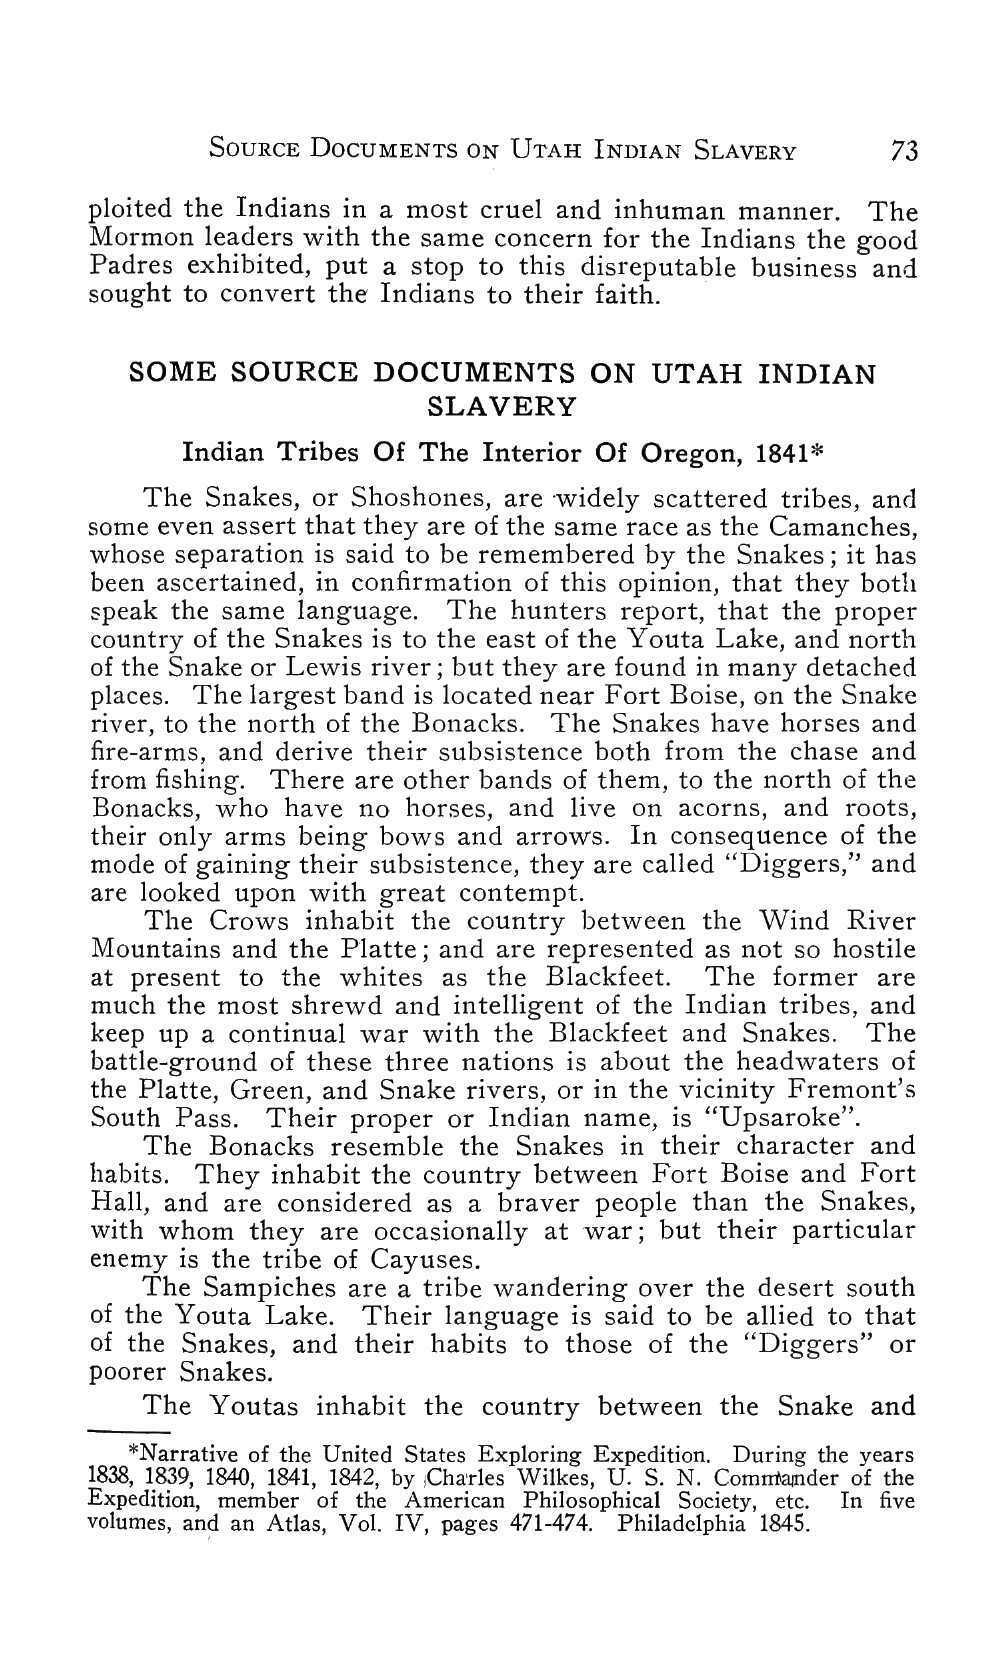 Page 76 of Some Source Documents on Utah Indian Slavery